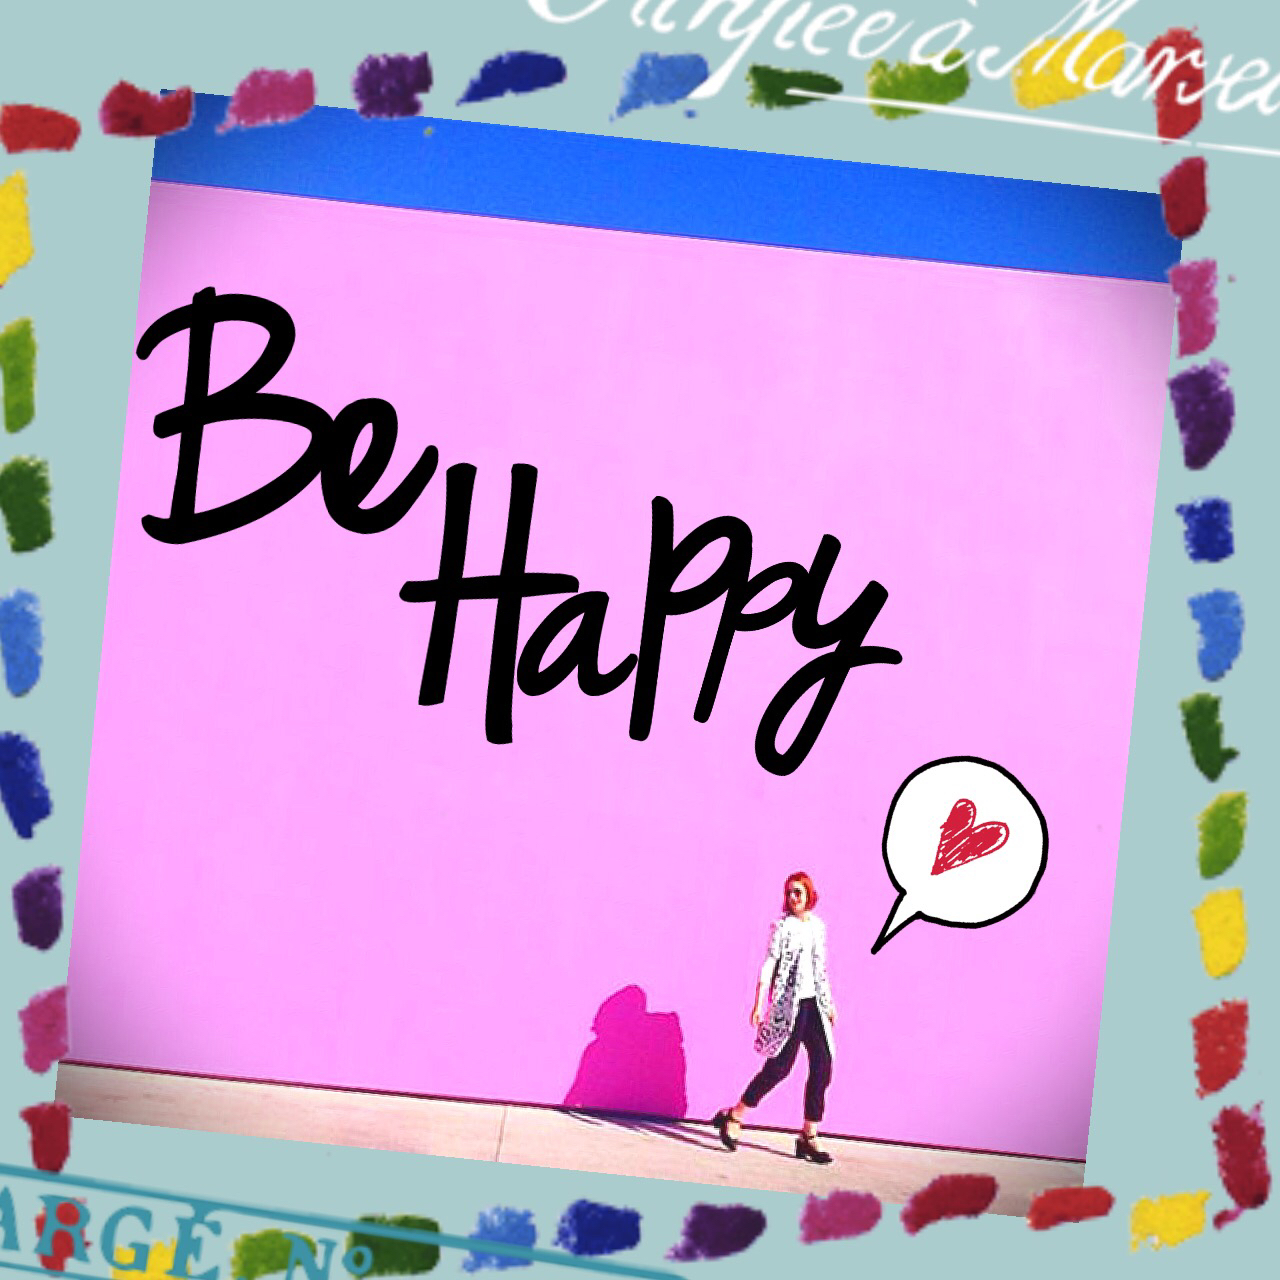 Be happy ☆☆☆